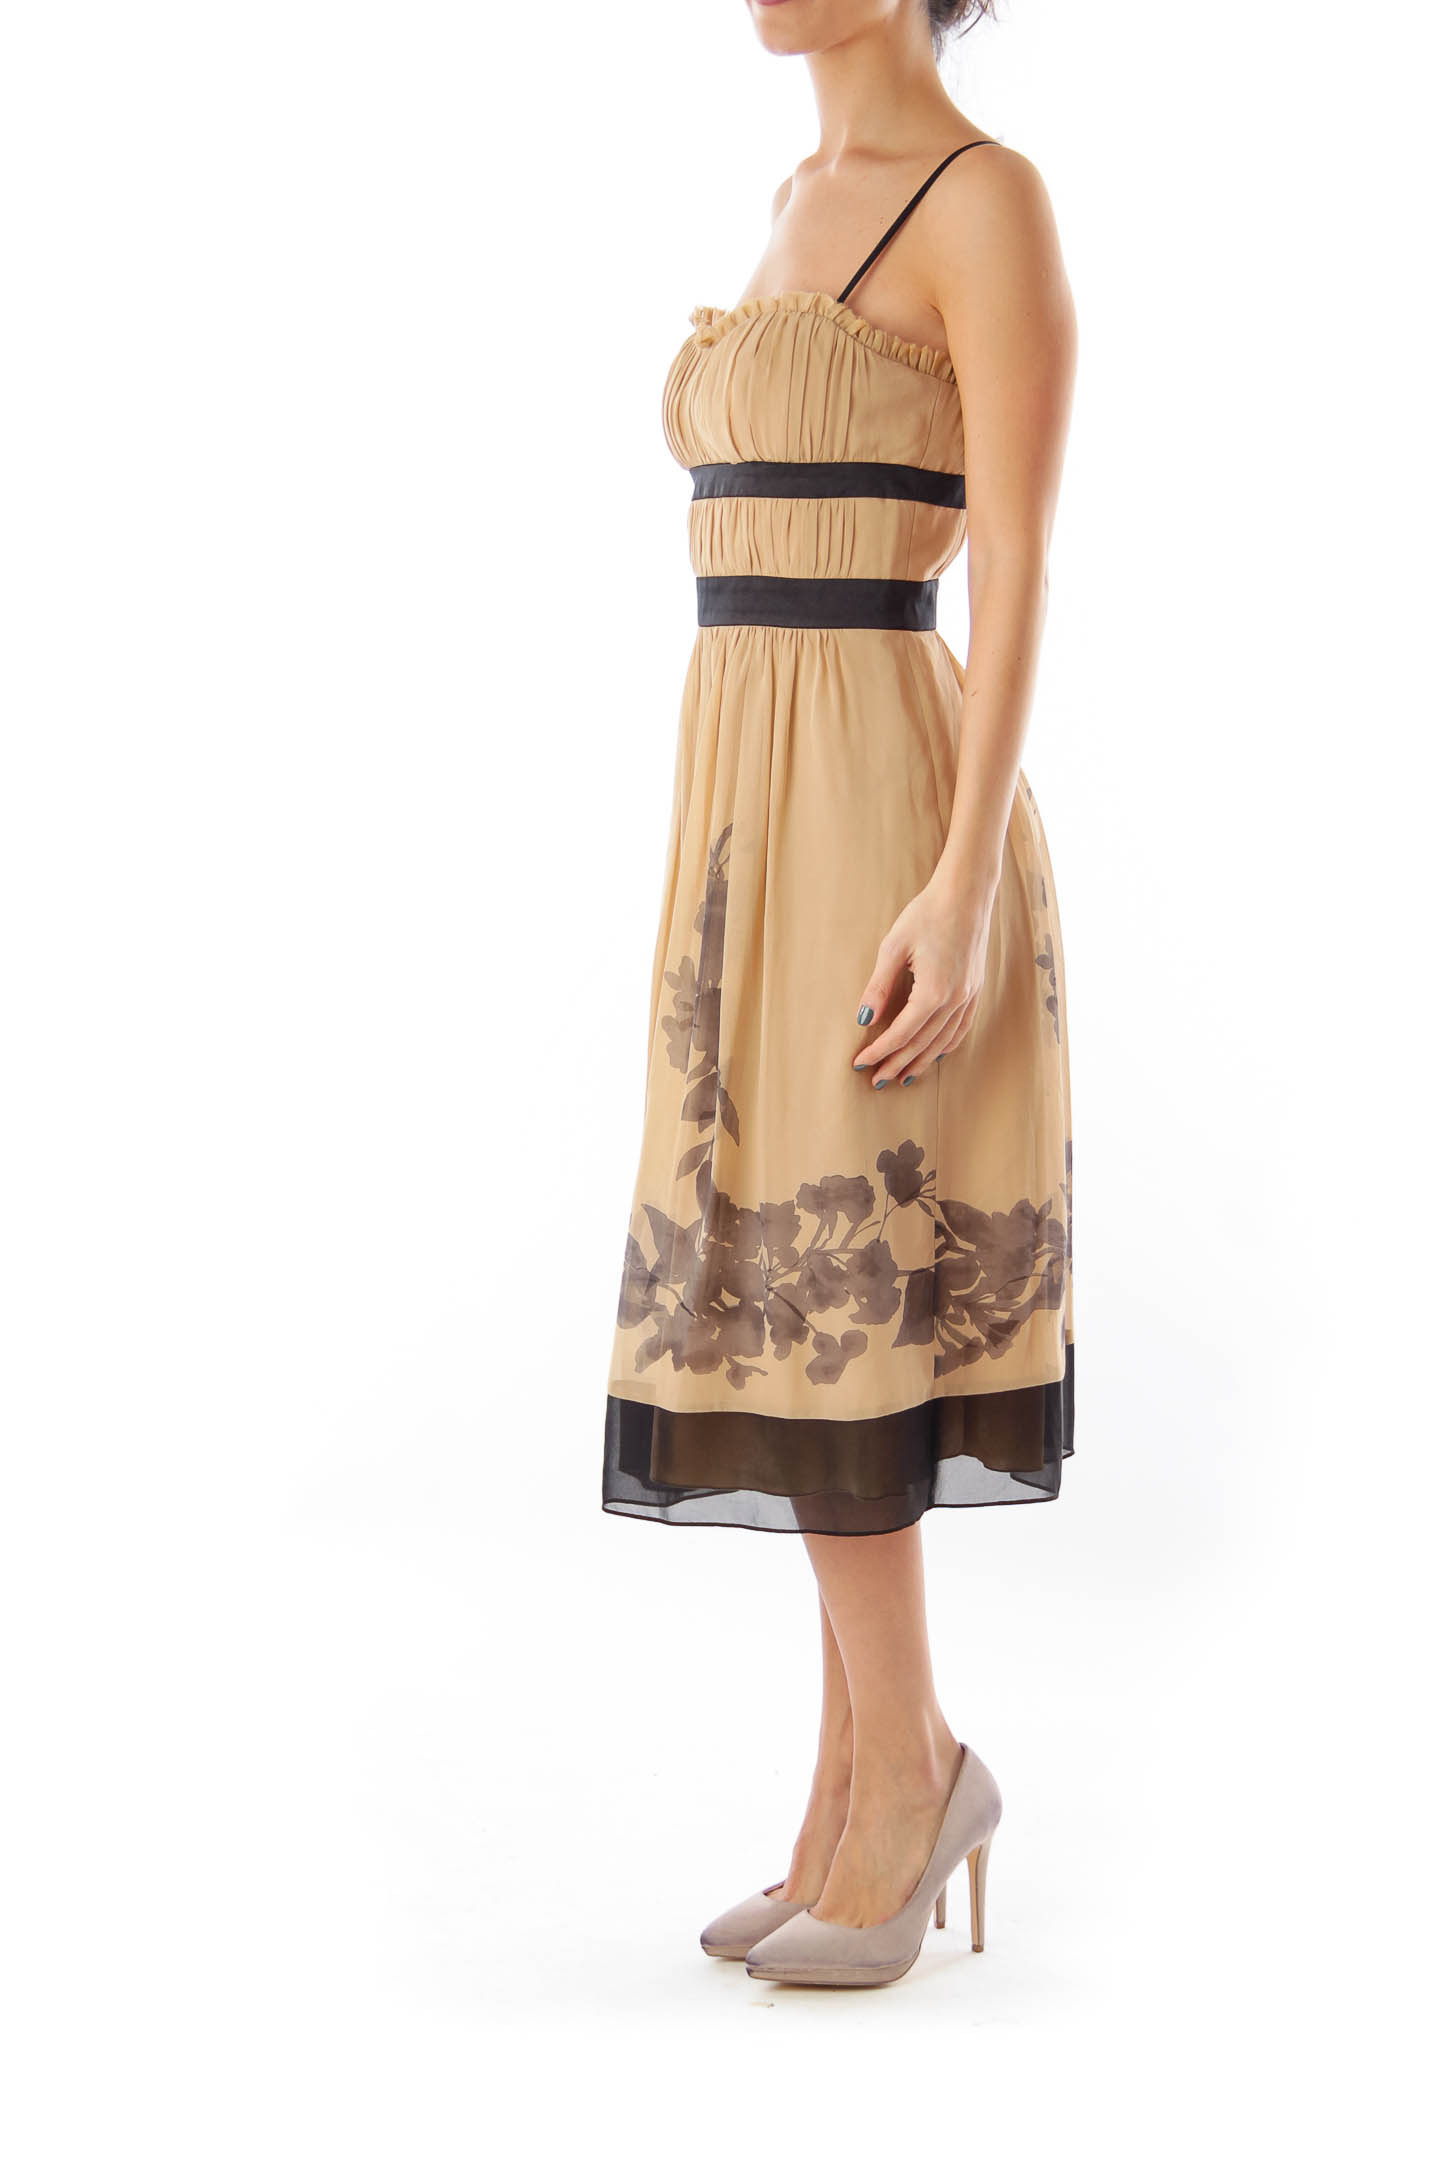 Beige & Black Floral Dress